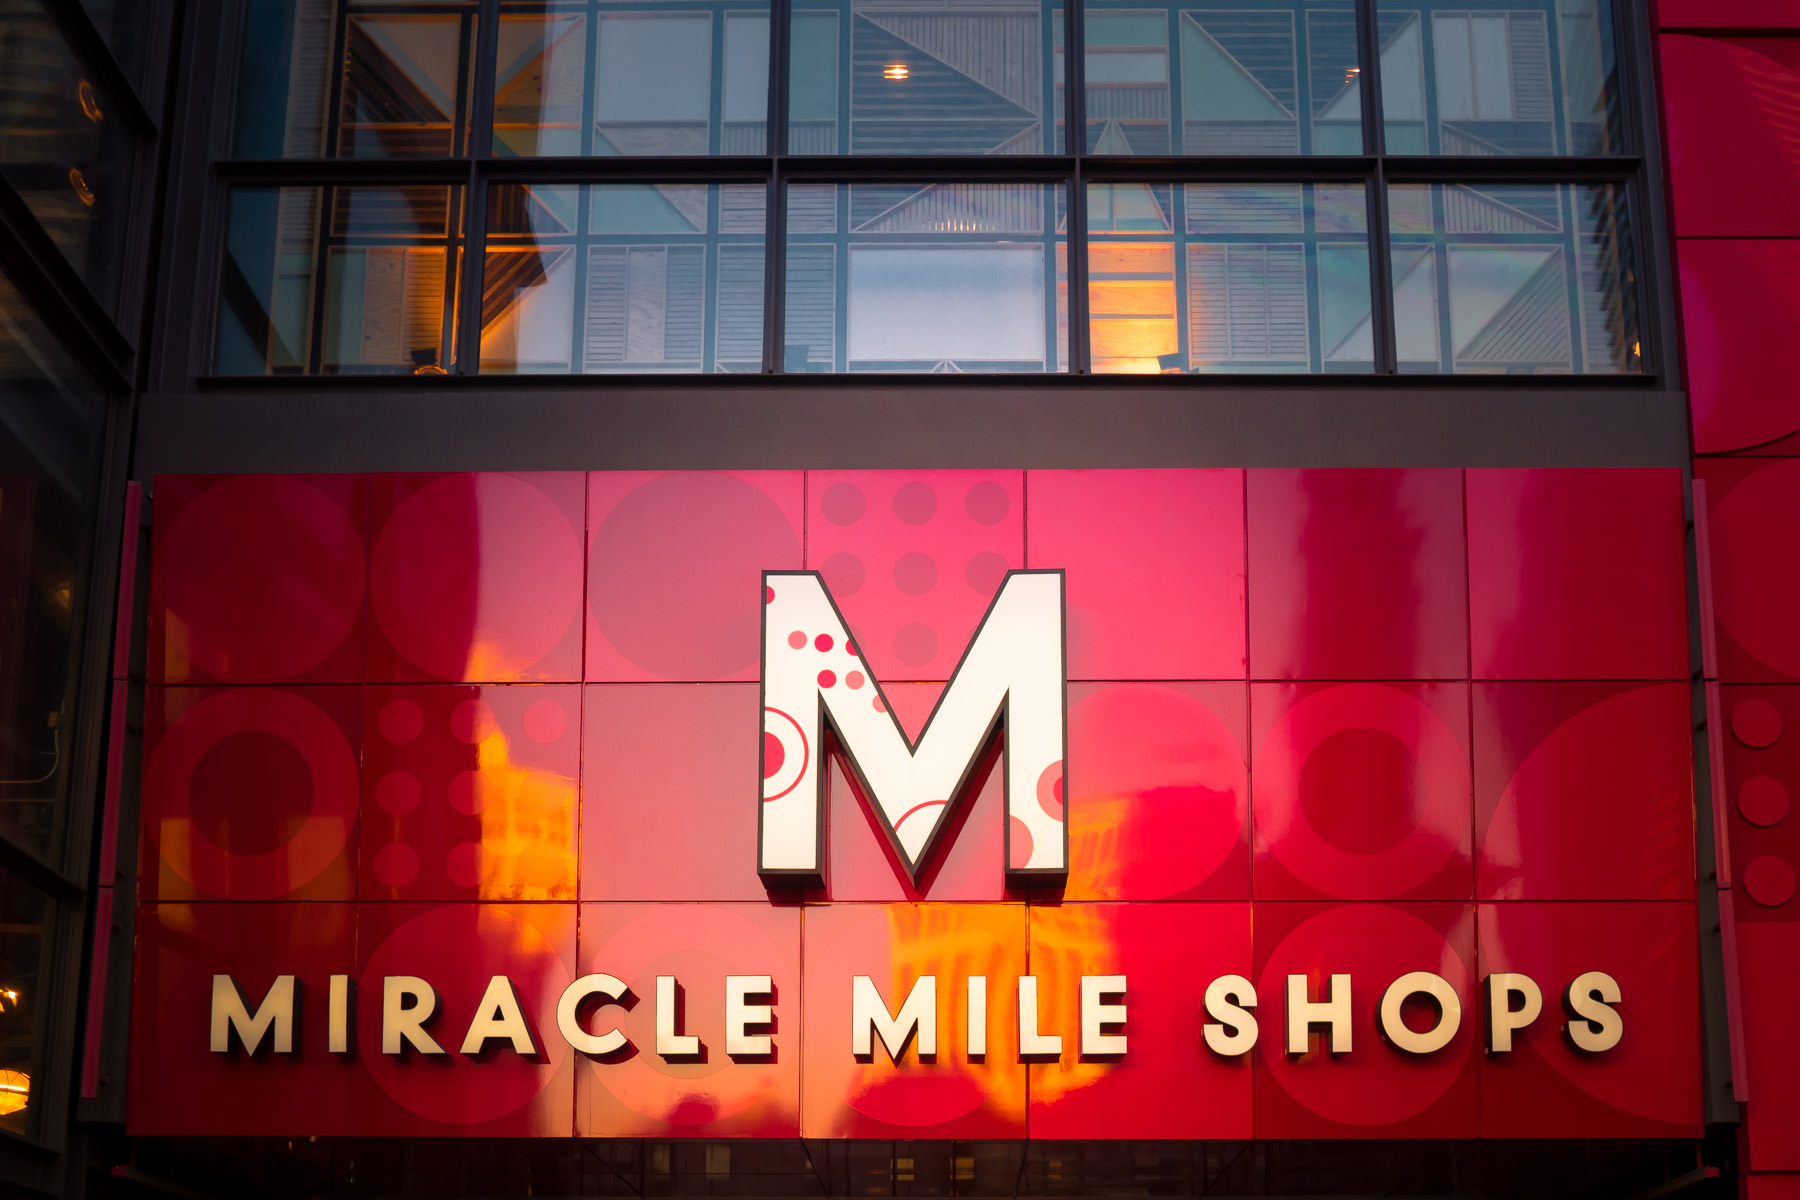 The sign above the main entrance to the Miracle Mile Shops at Planet Hollywood Hotel & Casino, Las Vegas.